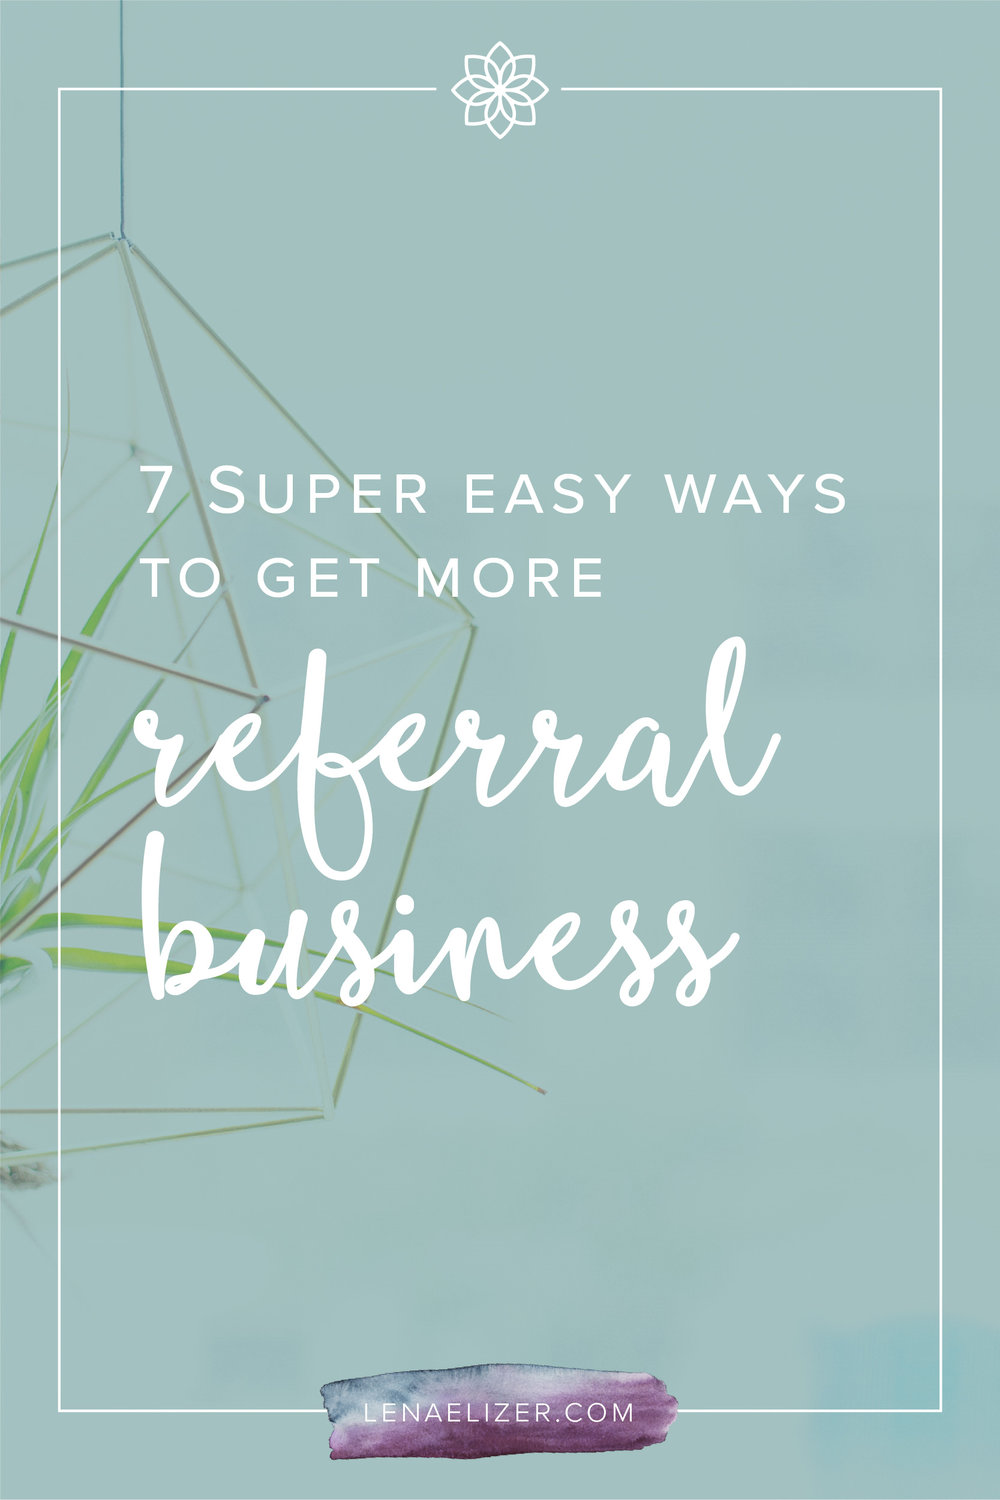 getmorereferrals_tall.jpg